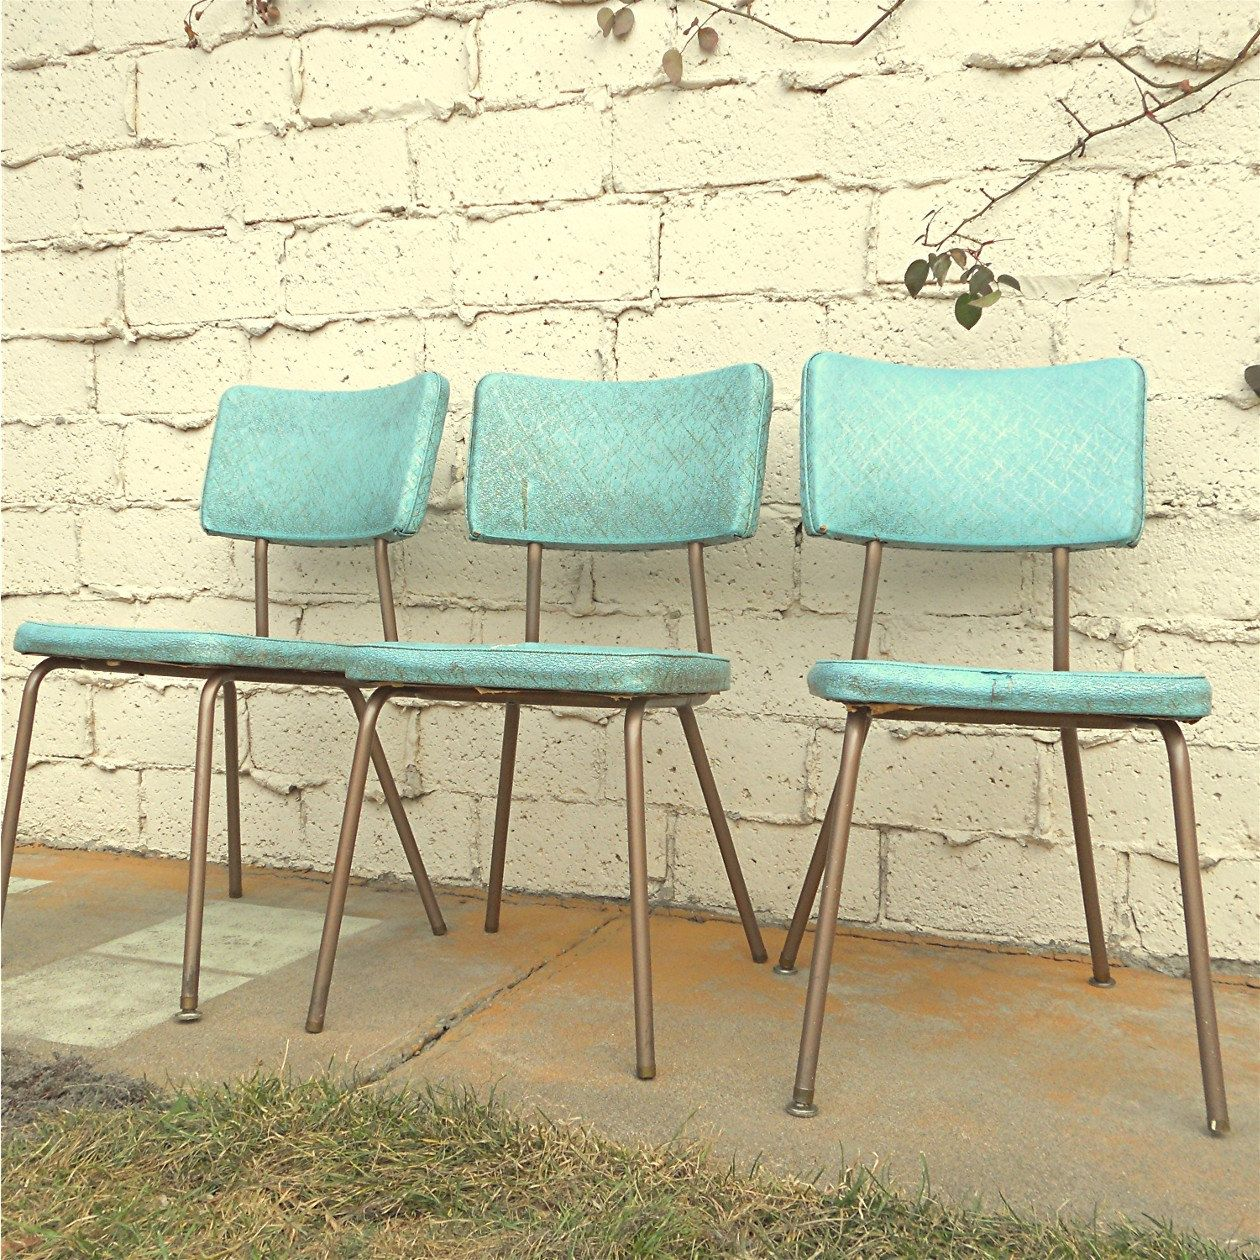 vintage kitchen chairs  Kitchen chairs, Turquoise chair, Vintage